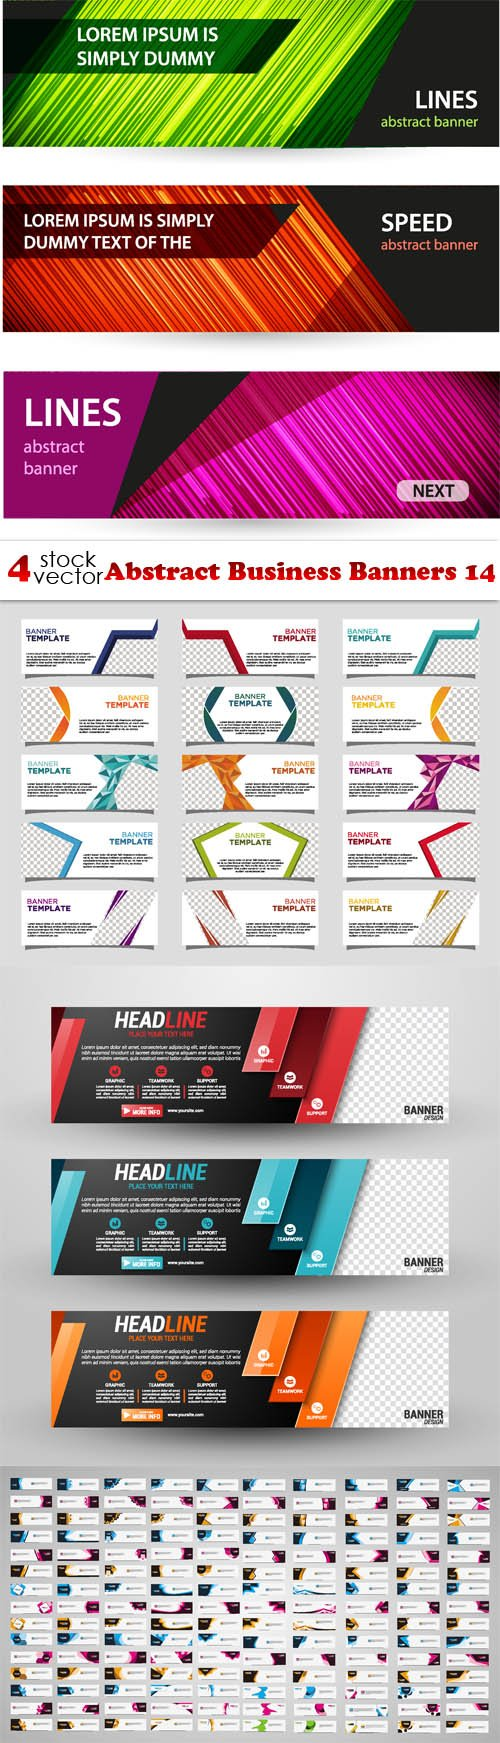 Vectors - Abstract Business Banners 14